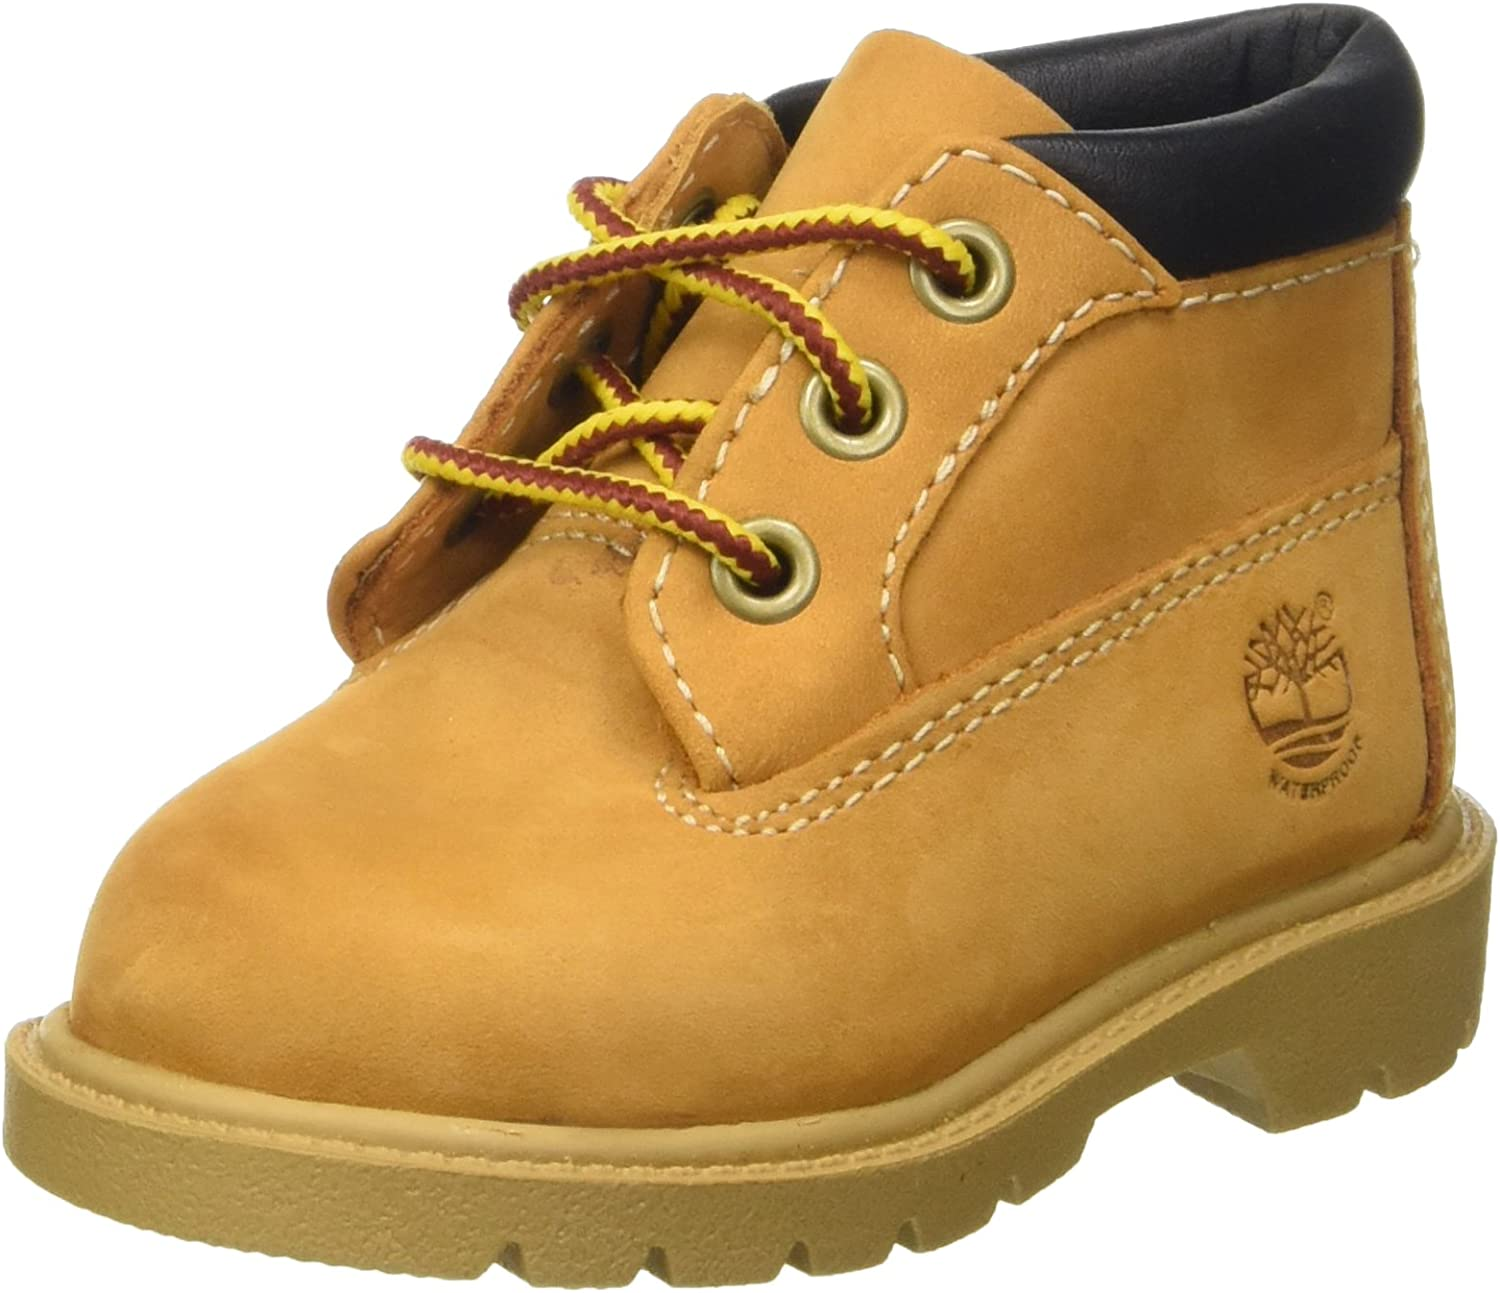 Timberland Boys Walking Baby Shoes Chukka